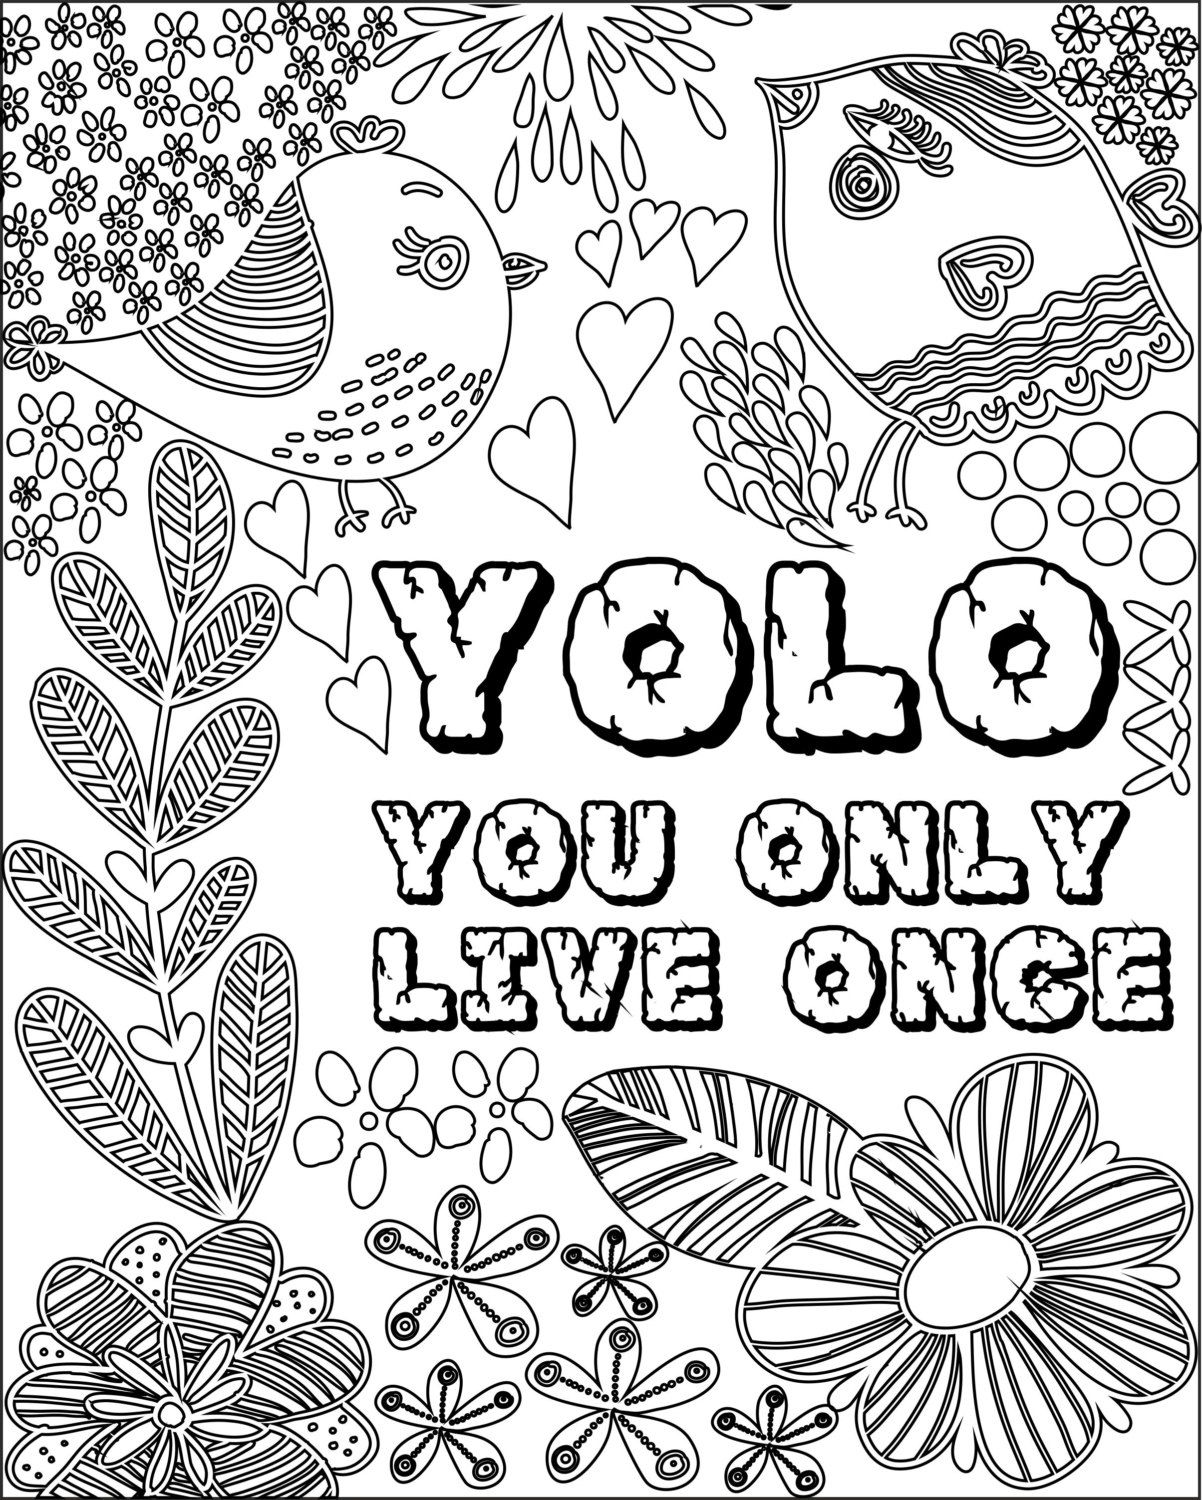 Inspirational Fun Quotes Colouring Pages (Set of 6)  Quote